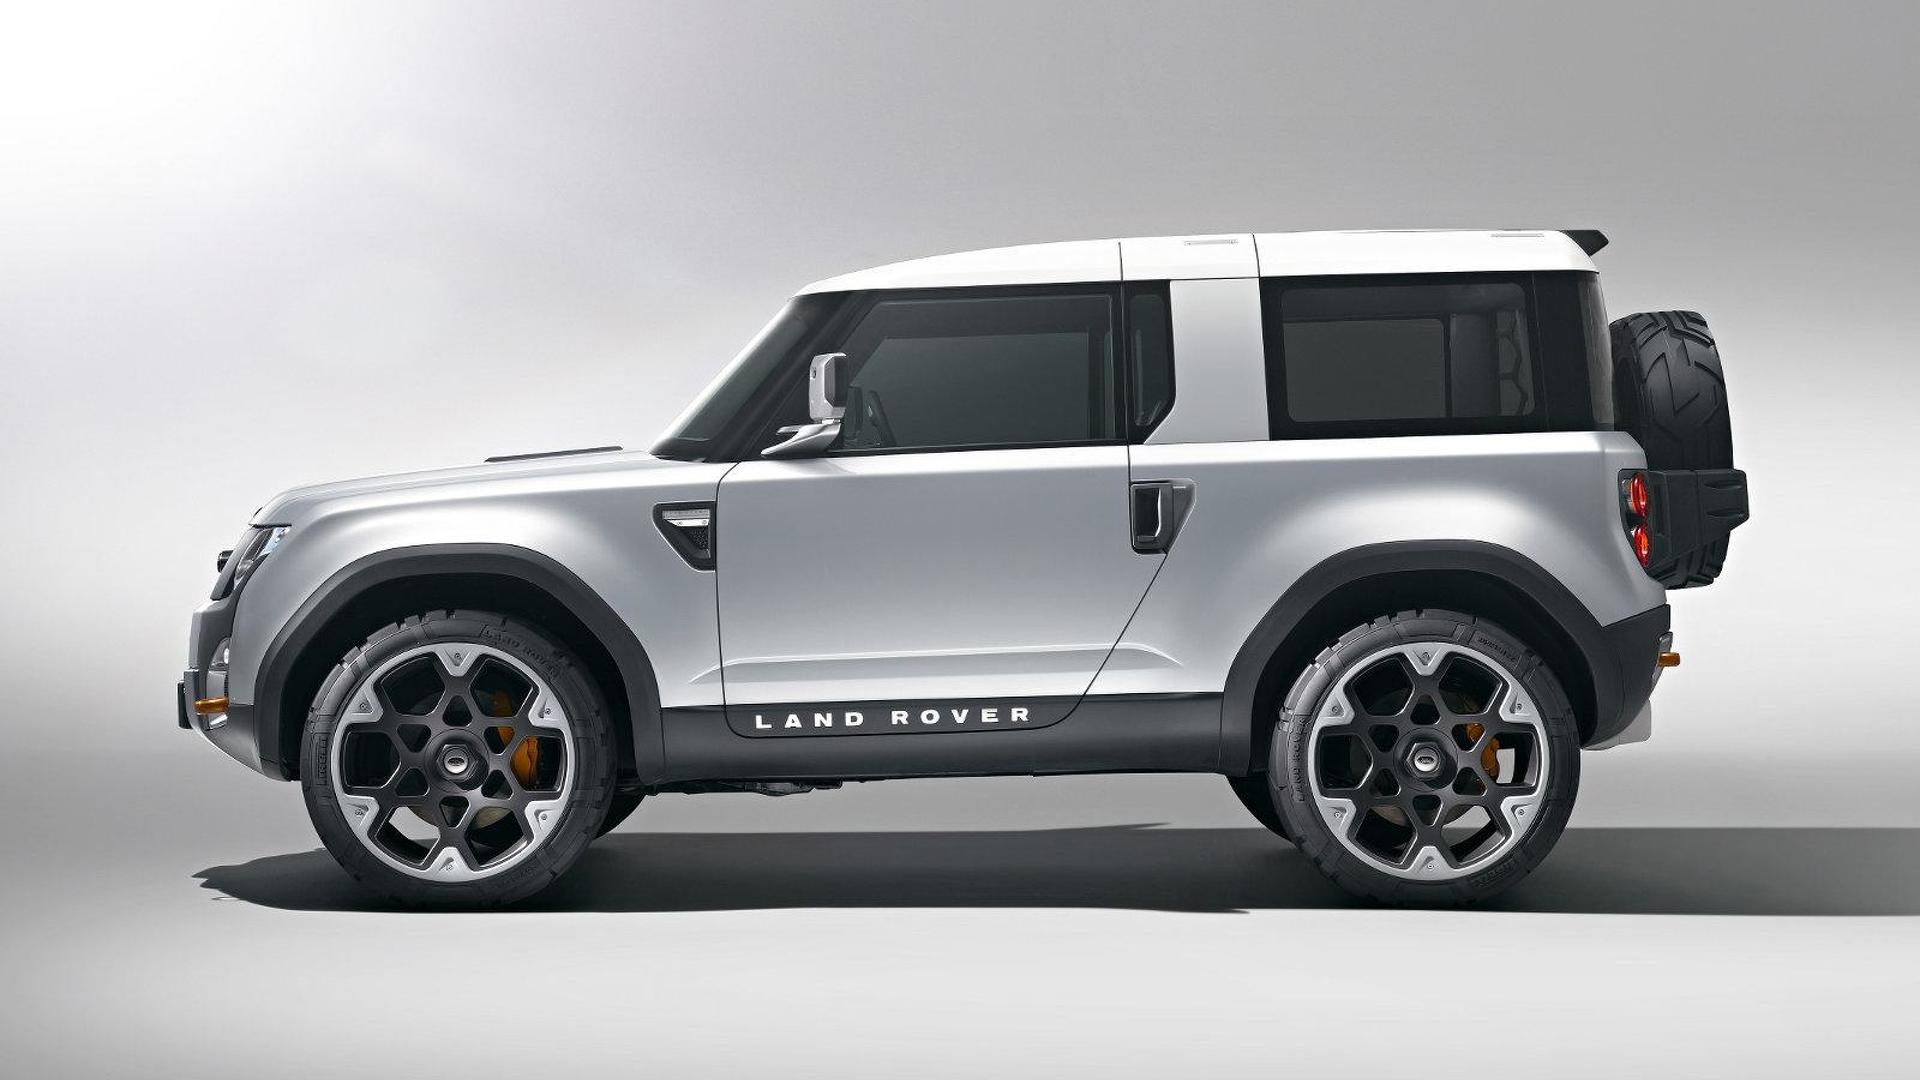 Land Rover Defender Concept revealed